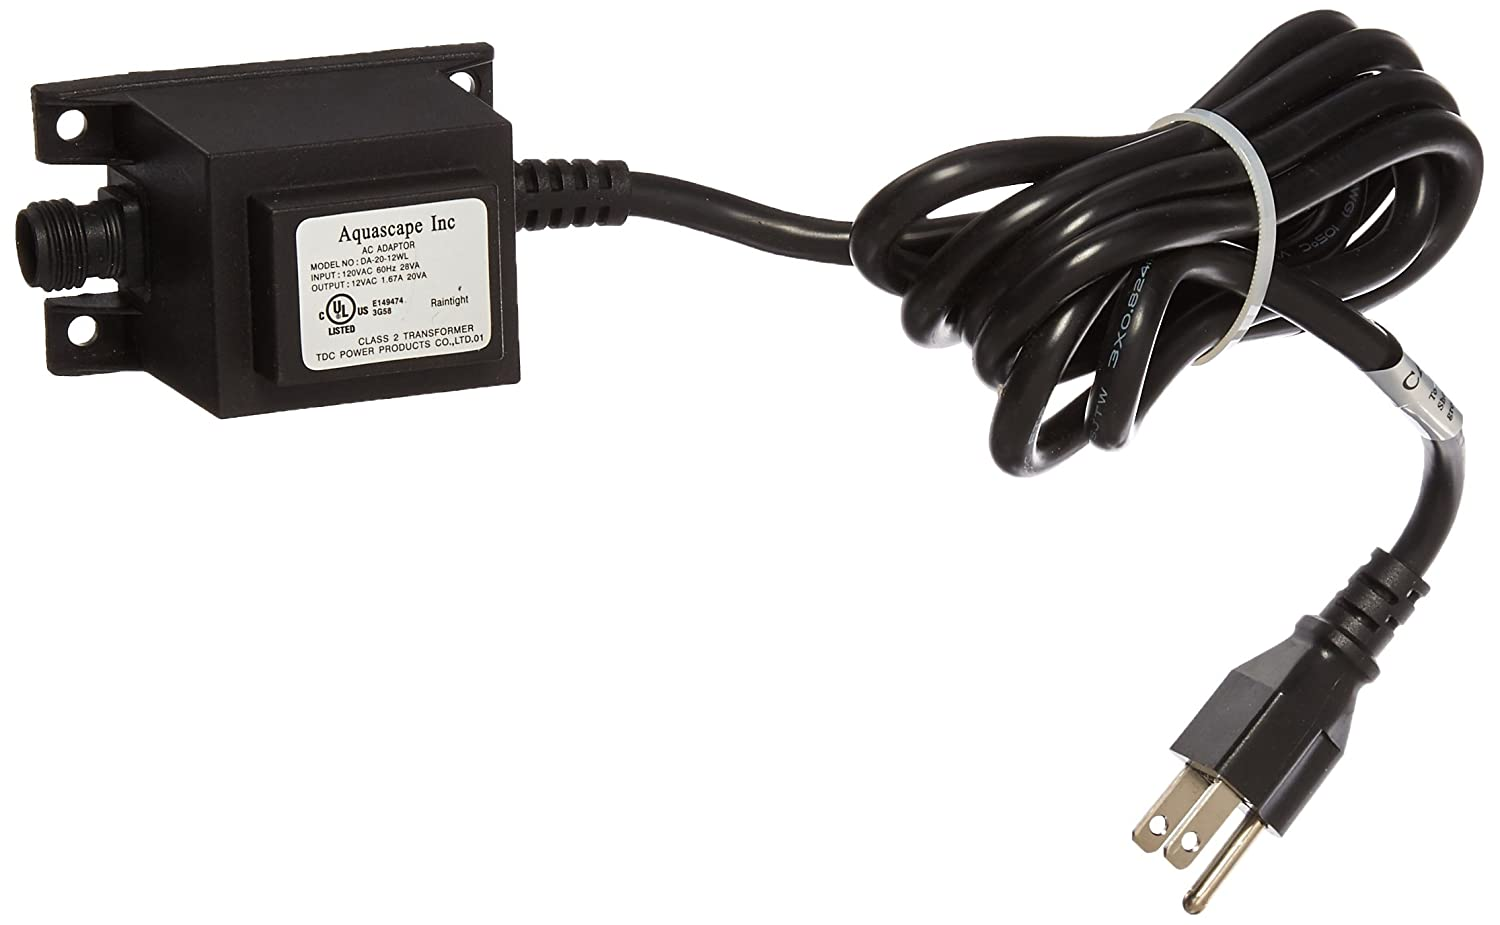 Amazon.com: Aquascape Low-Voltage Lighting Transformer for Pond ...